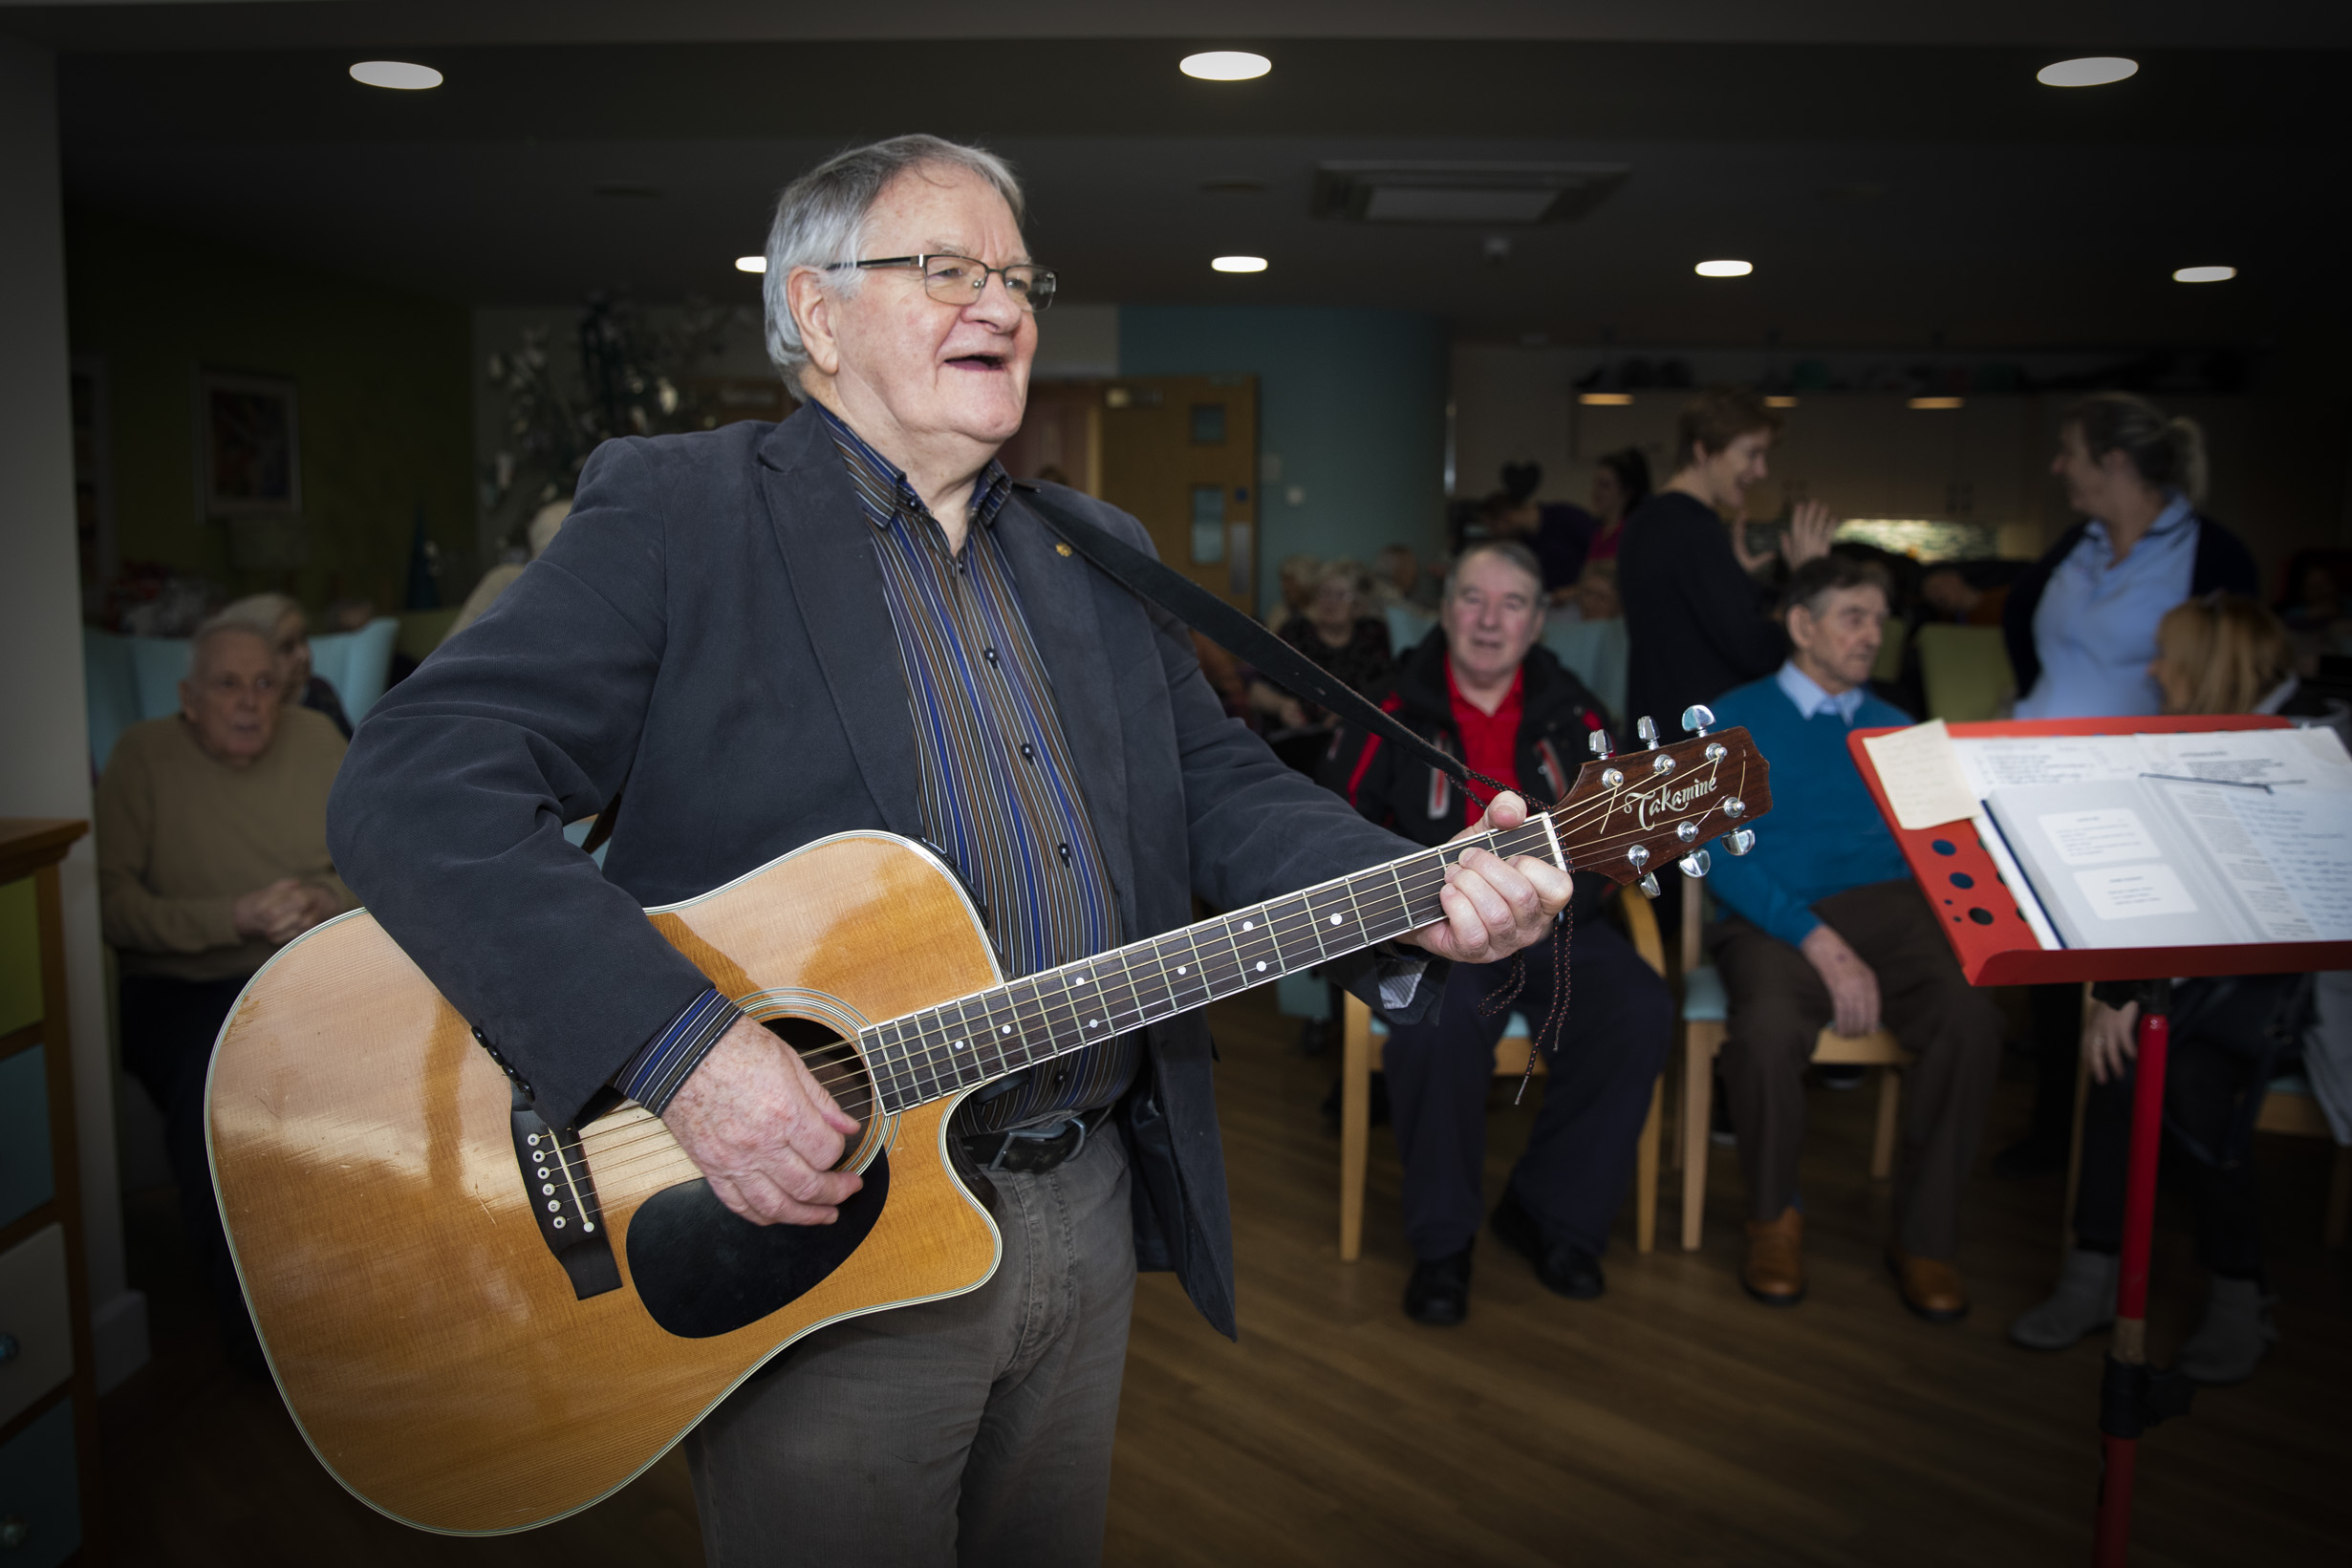 Folk singer Dafydd Iwan who beat Stormzy to top the charts goes down a storm with care home residents